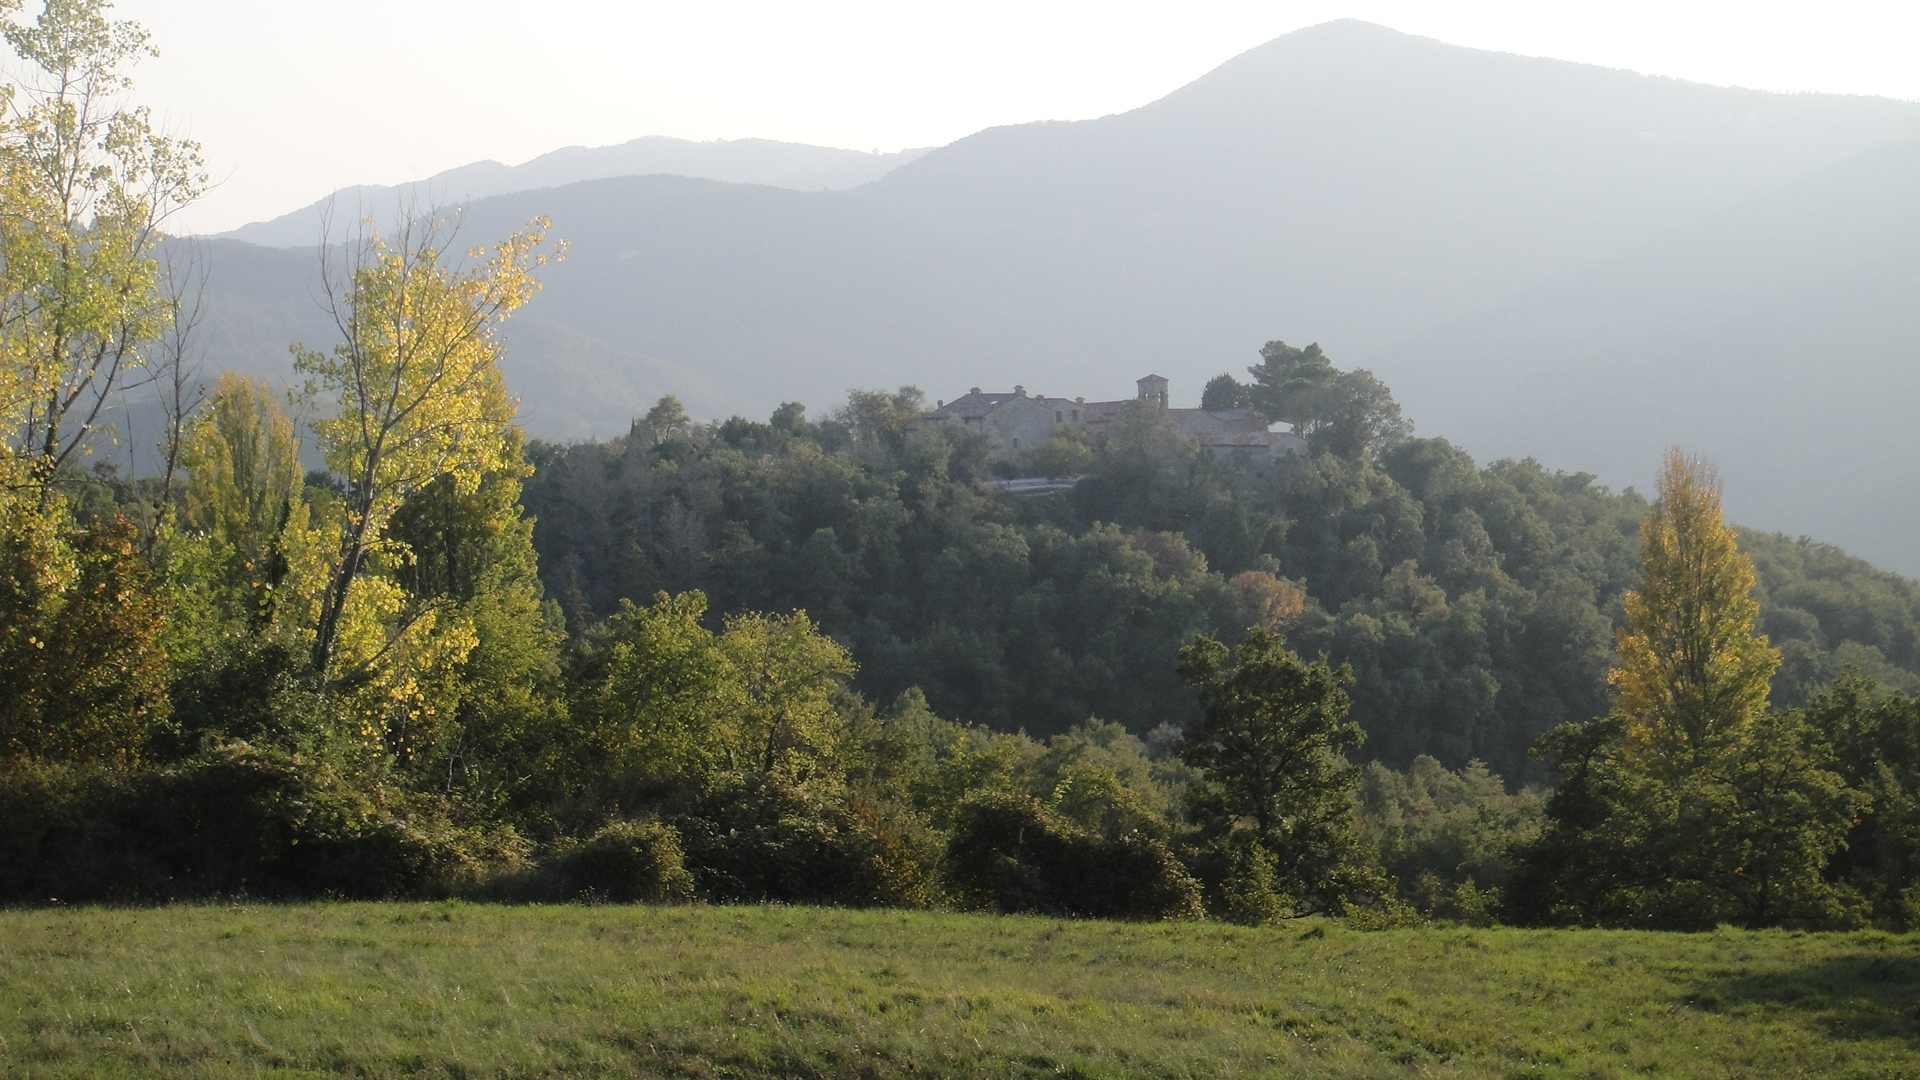 The Arthouse, located within an ancient hilltop castle in rural Umbria